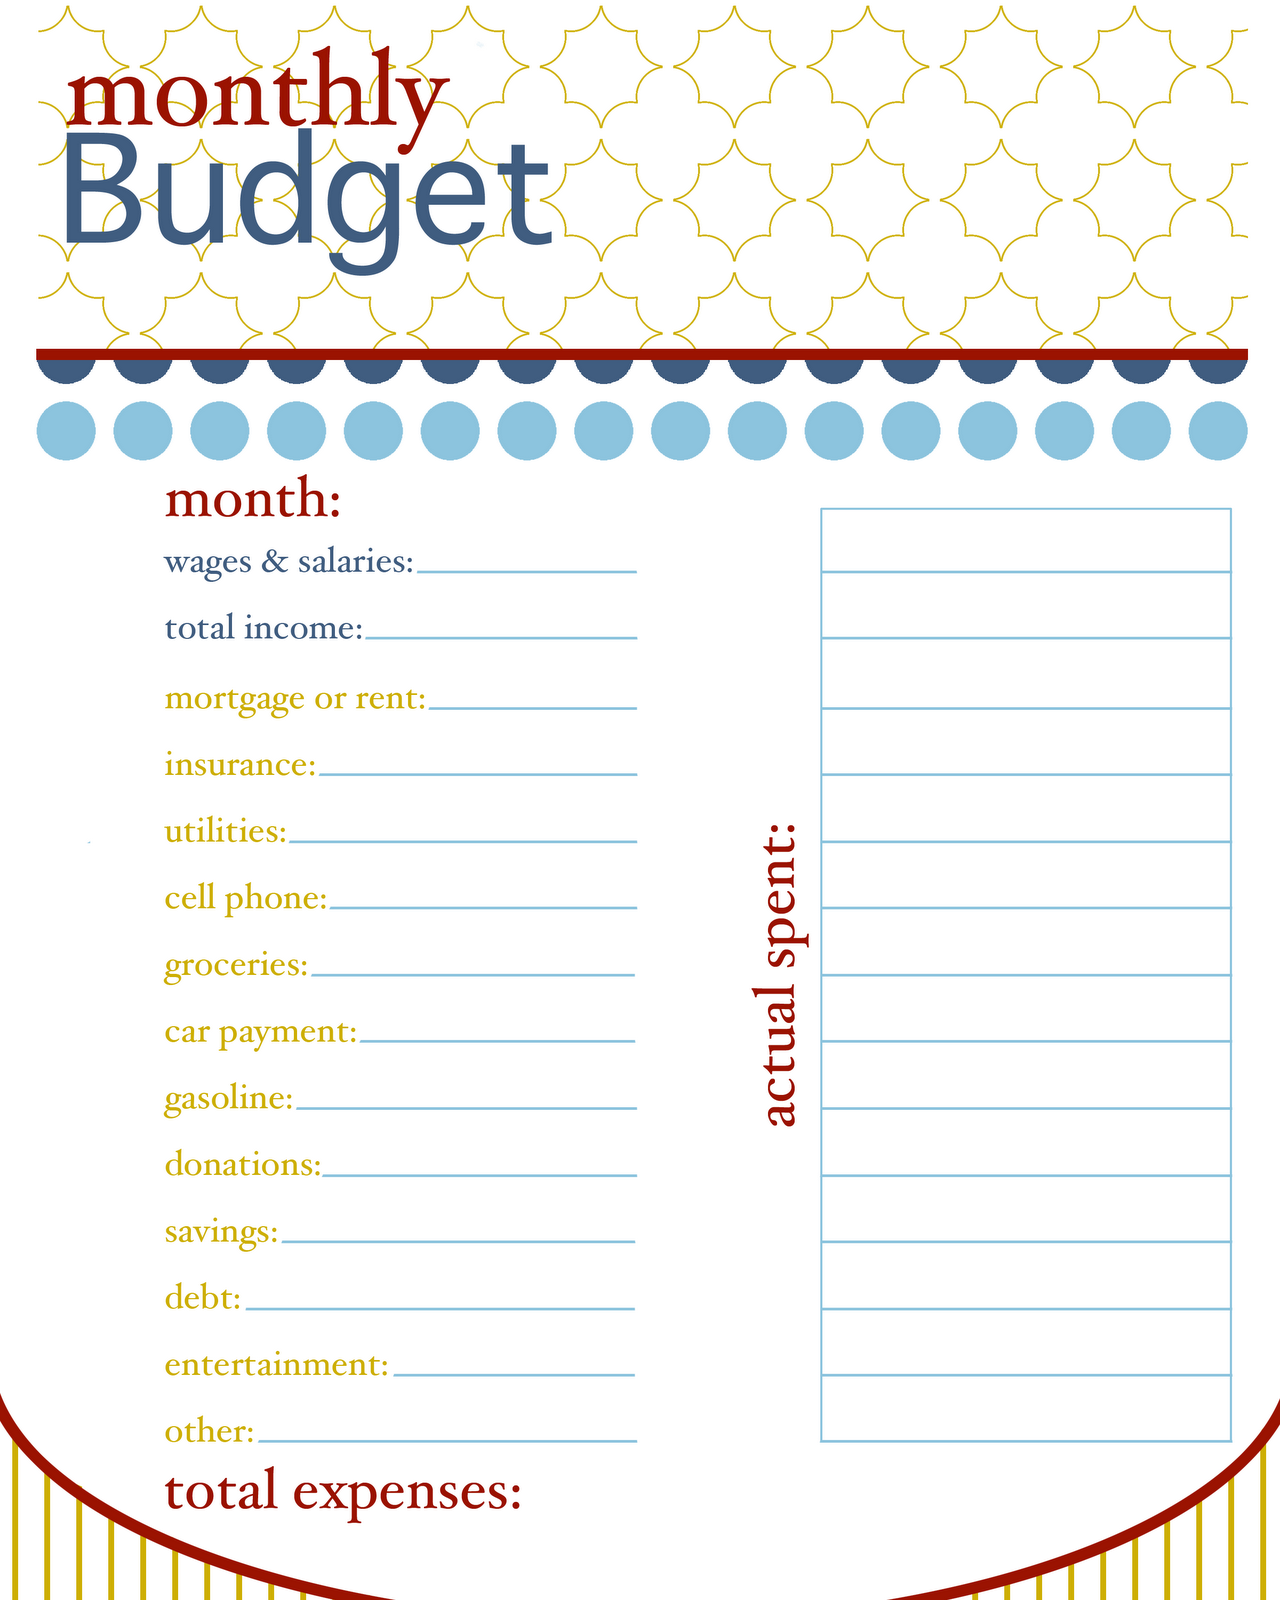 Budget sheet | Good to know | Pinterest | Budget, Budget ...